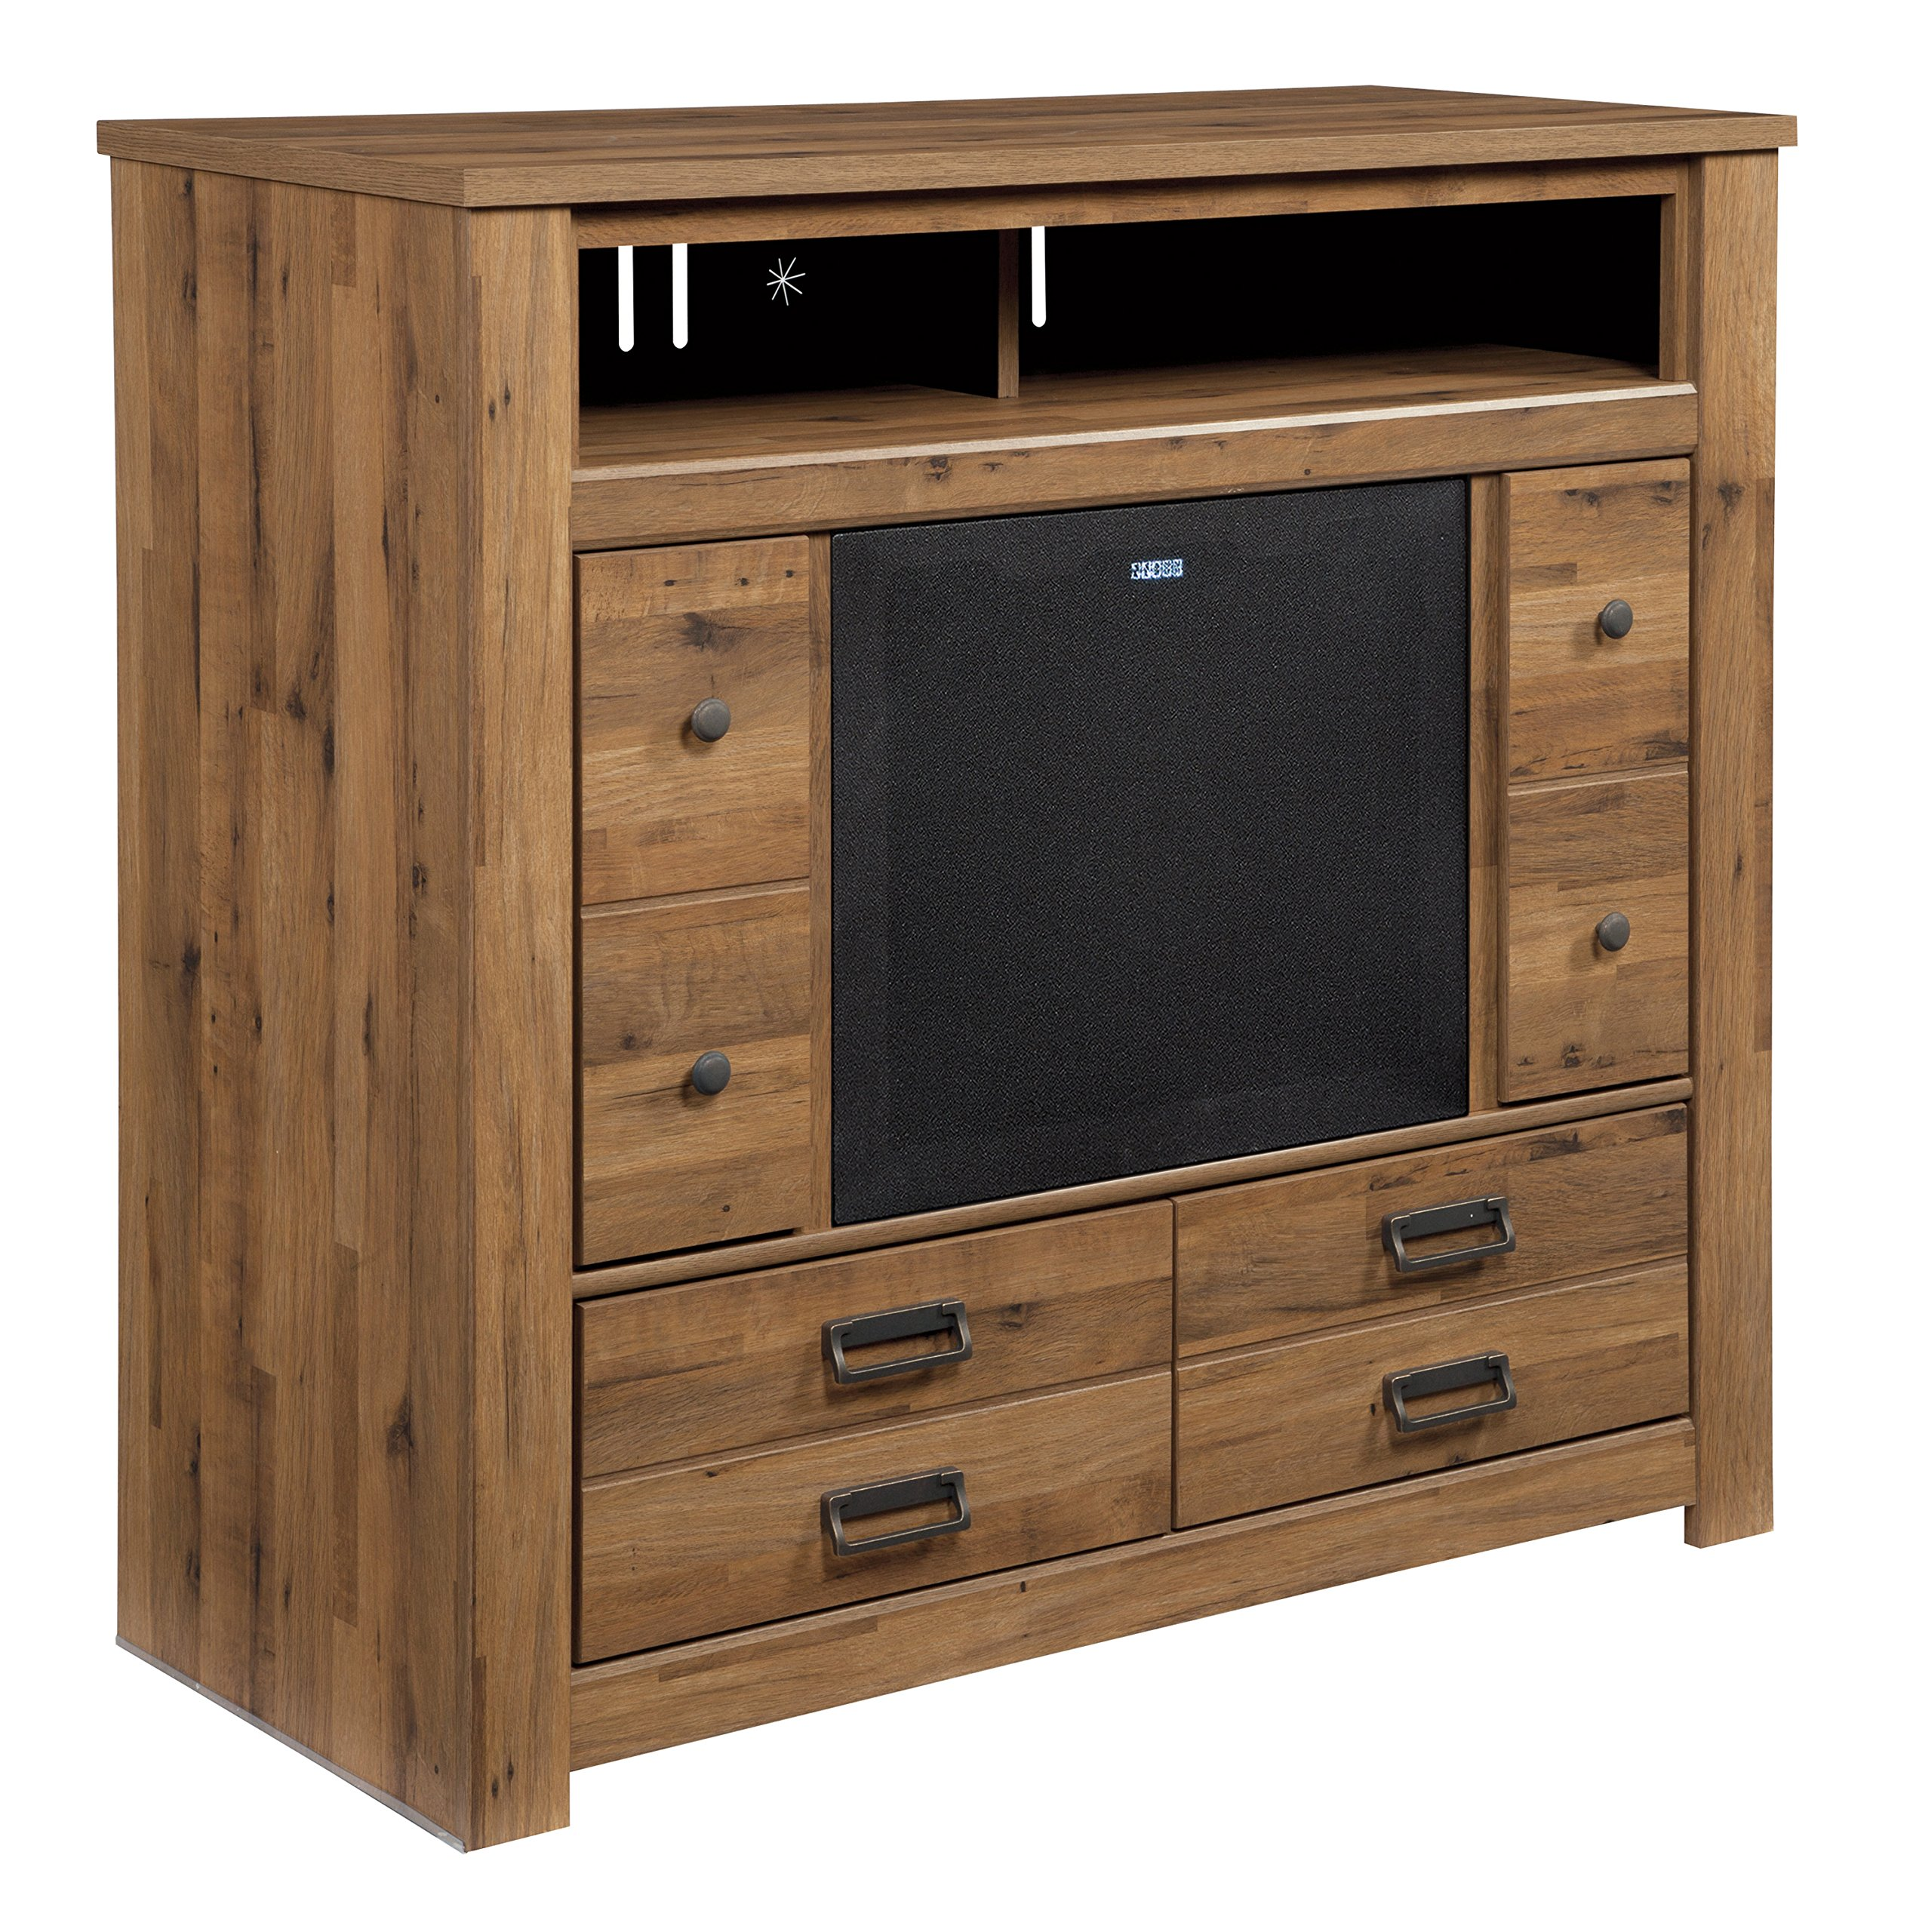 Ashley Furniture Signature Design - Cinrey Media TV Stand with Large Integrated Audio Unit Included - Medium Brown by